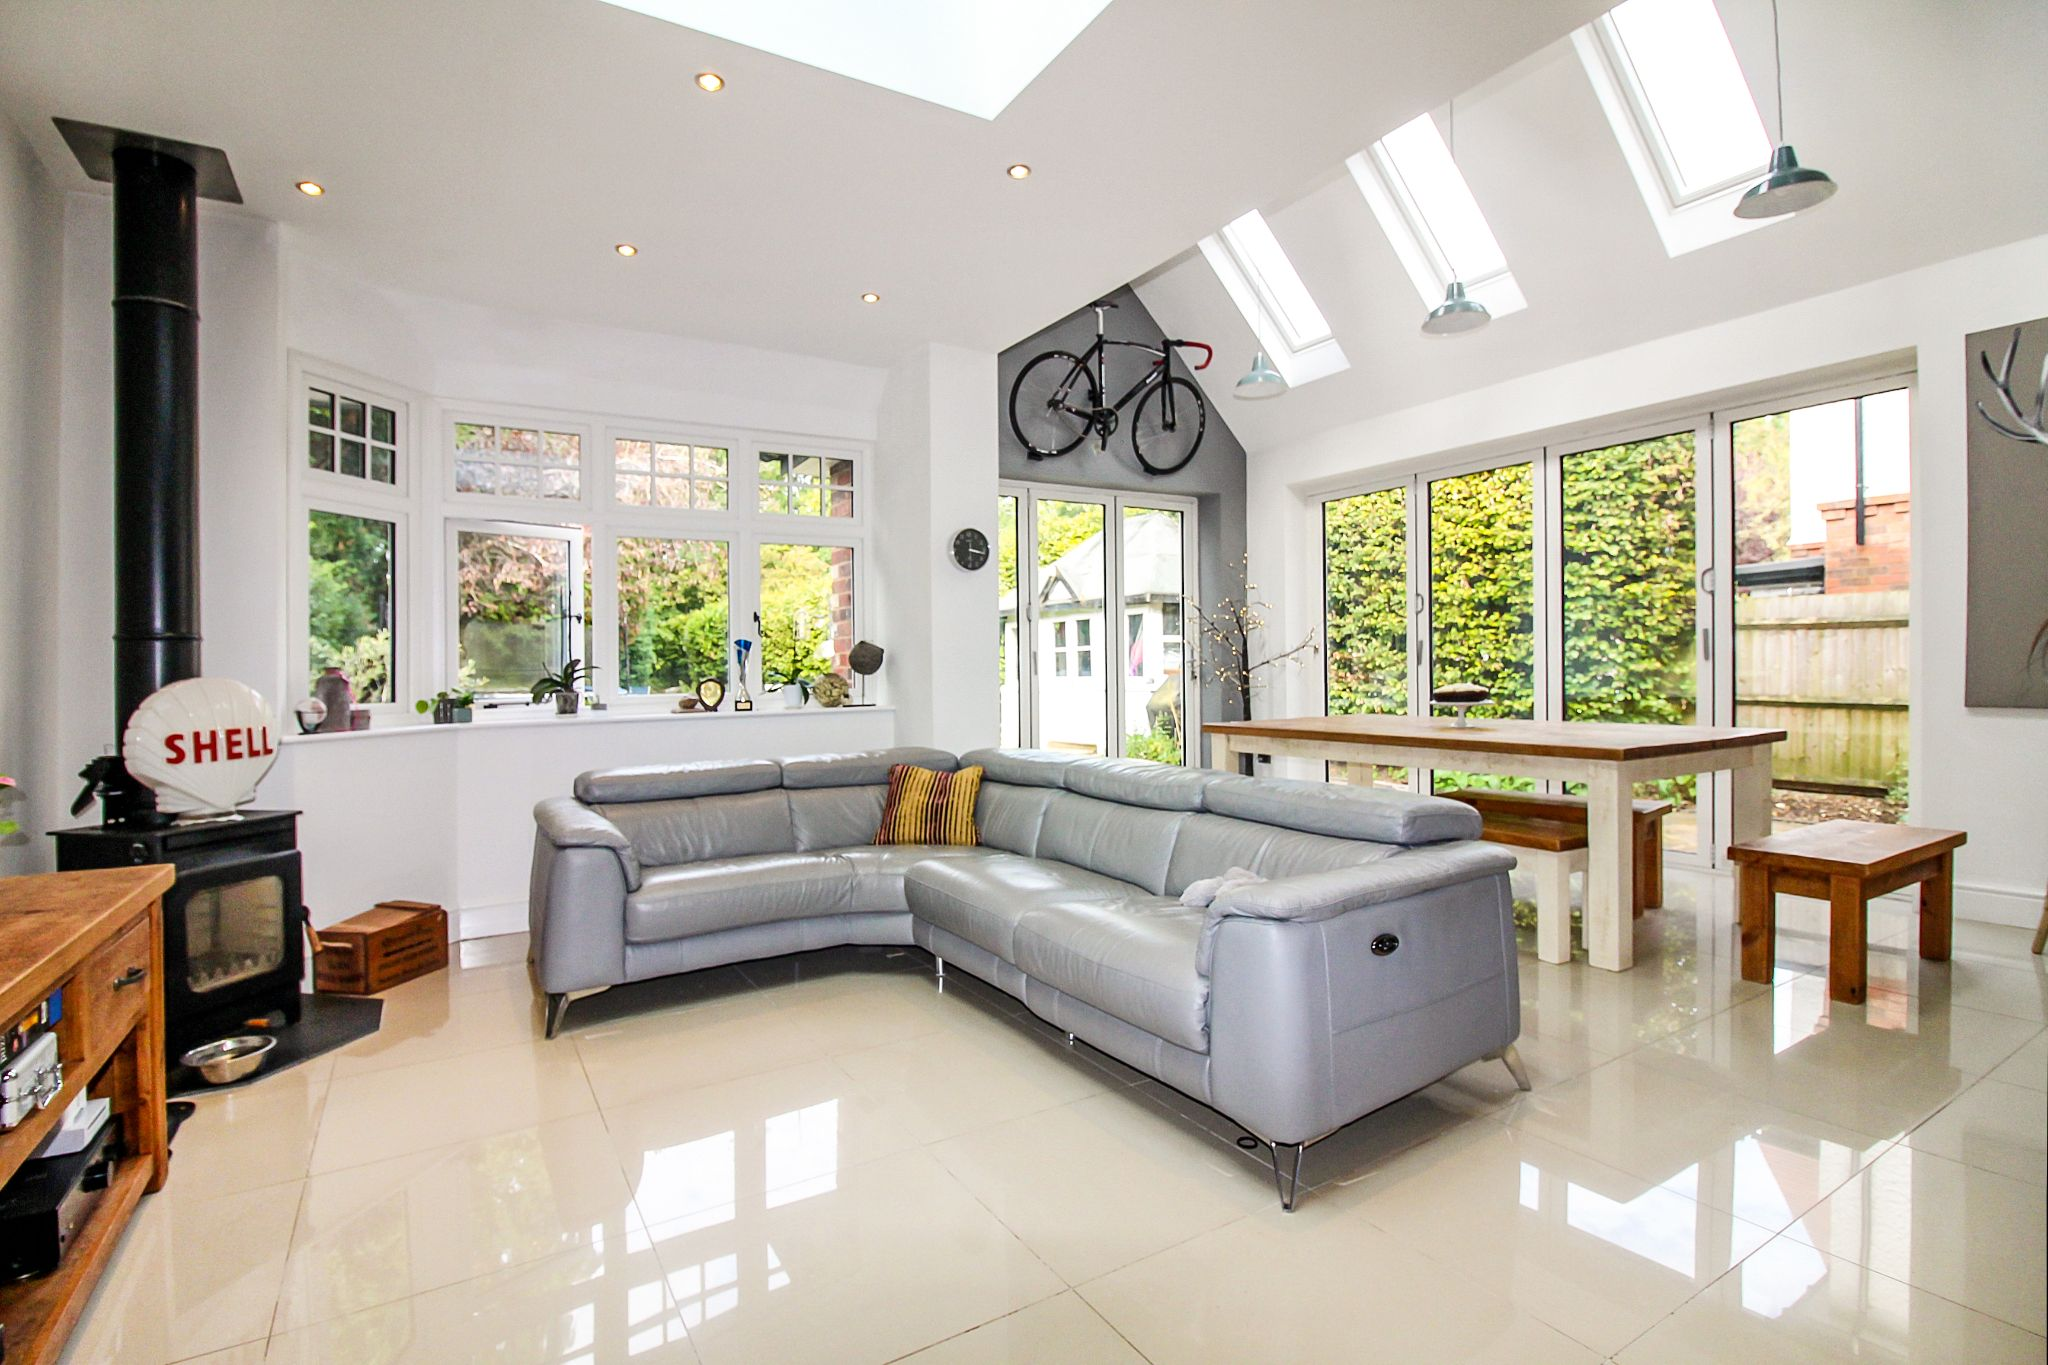 5 bedroom detached house For Sale in Solihull - Photograph 3.